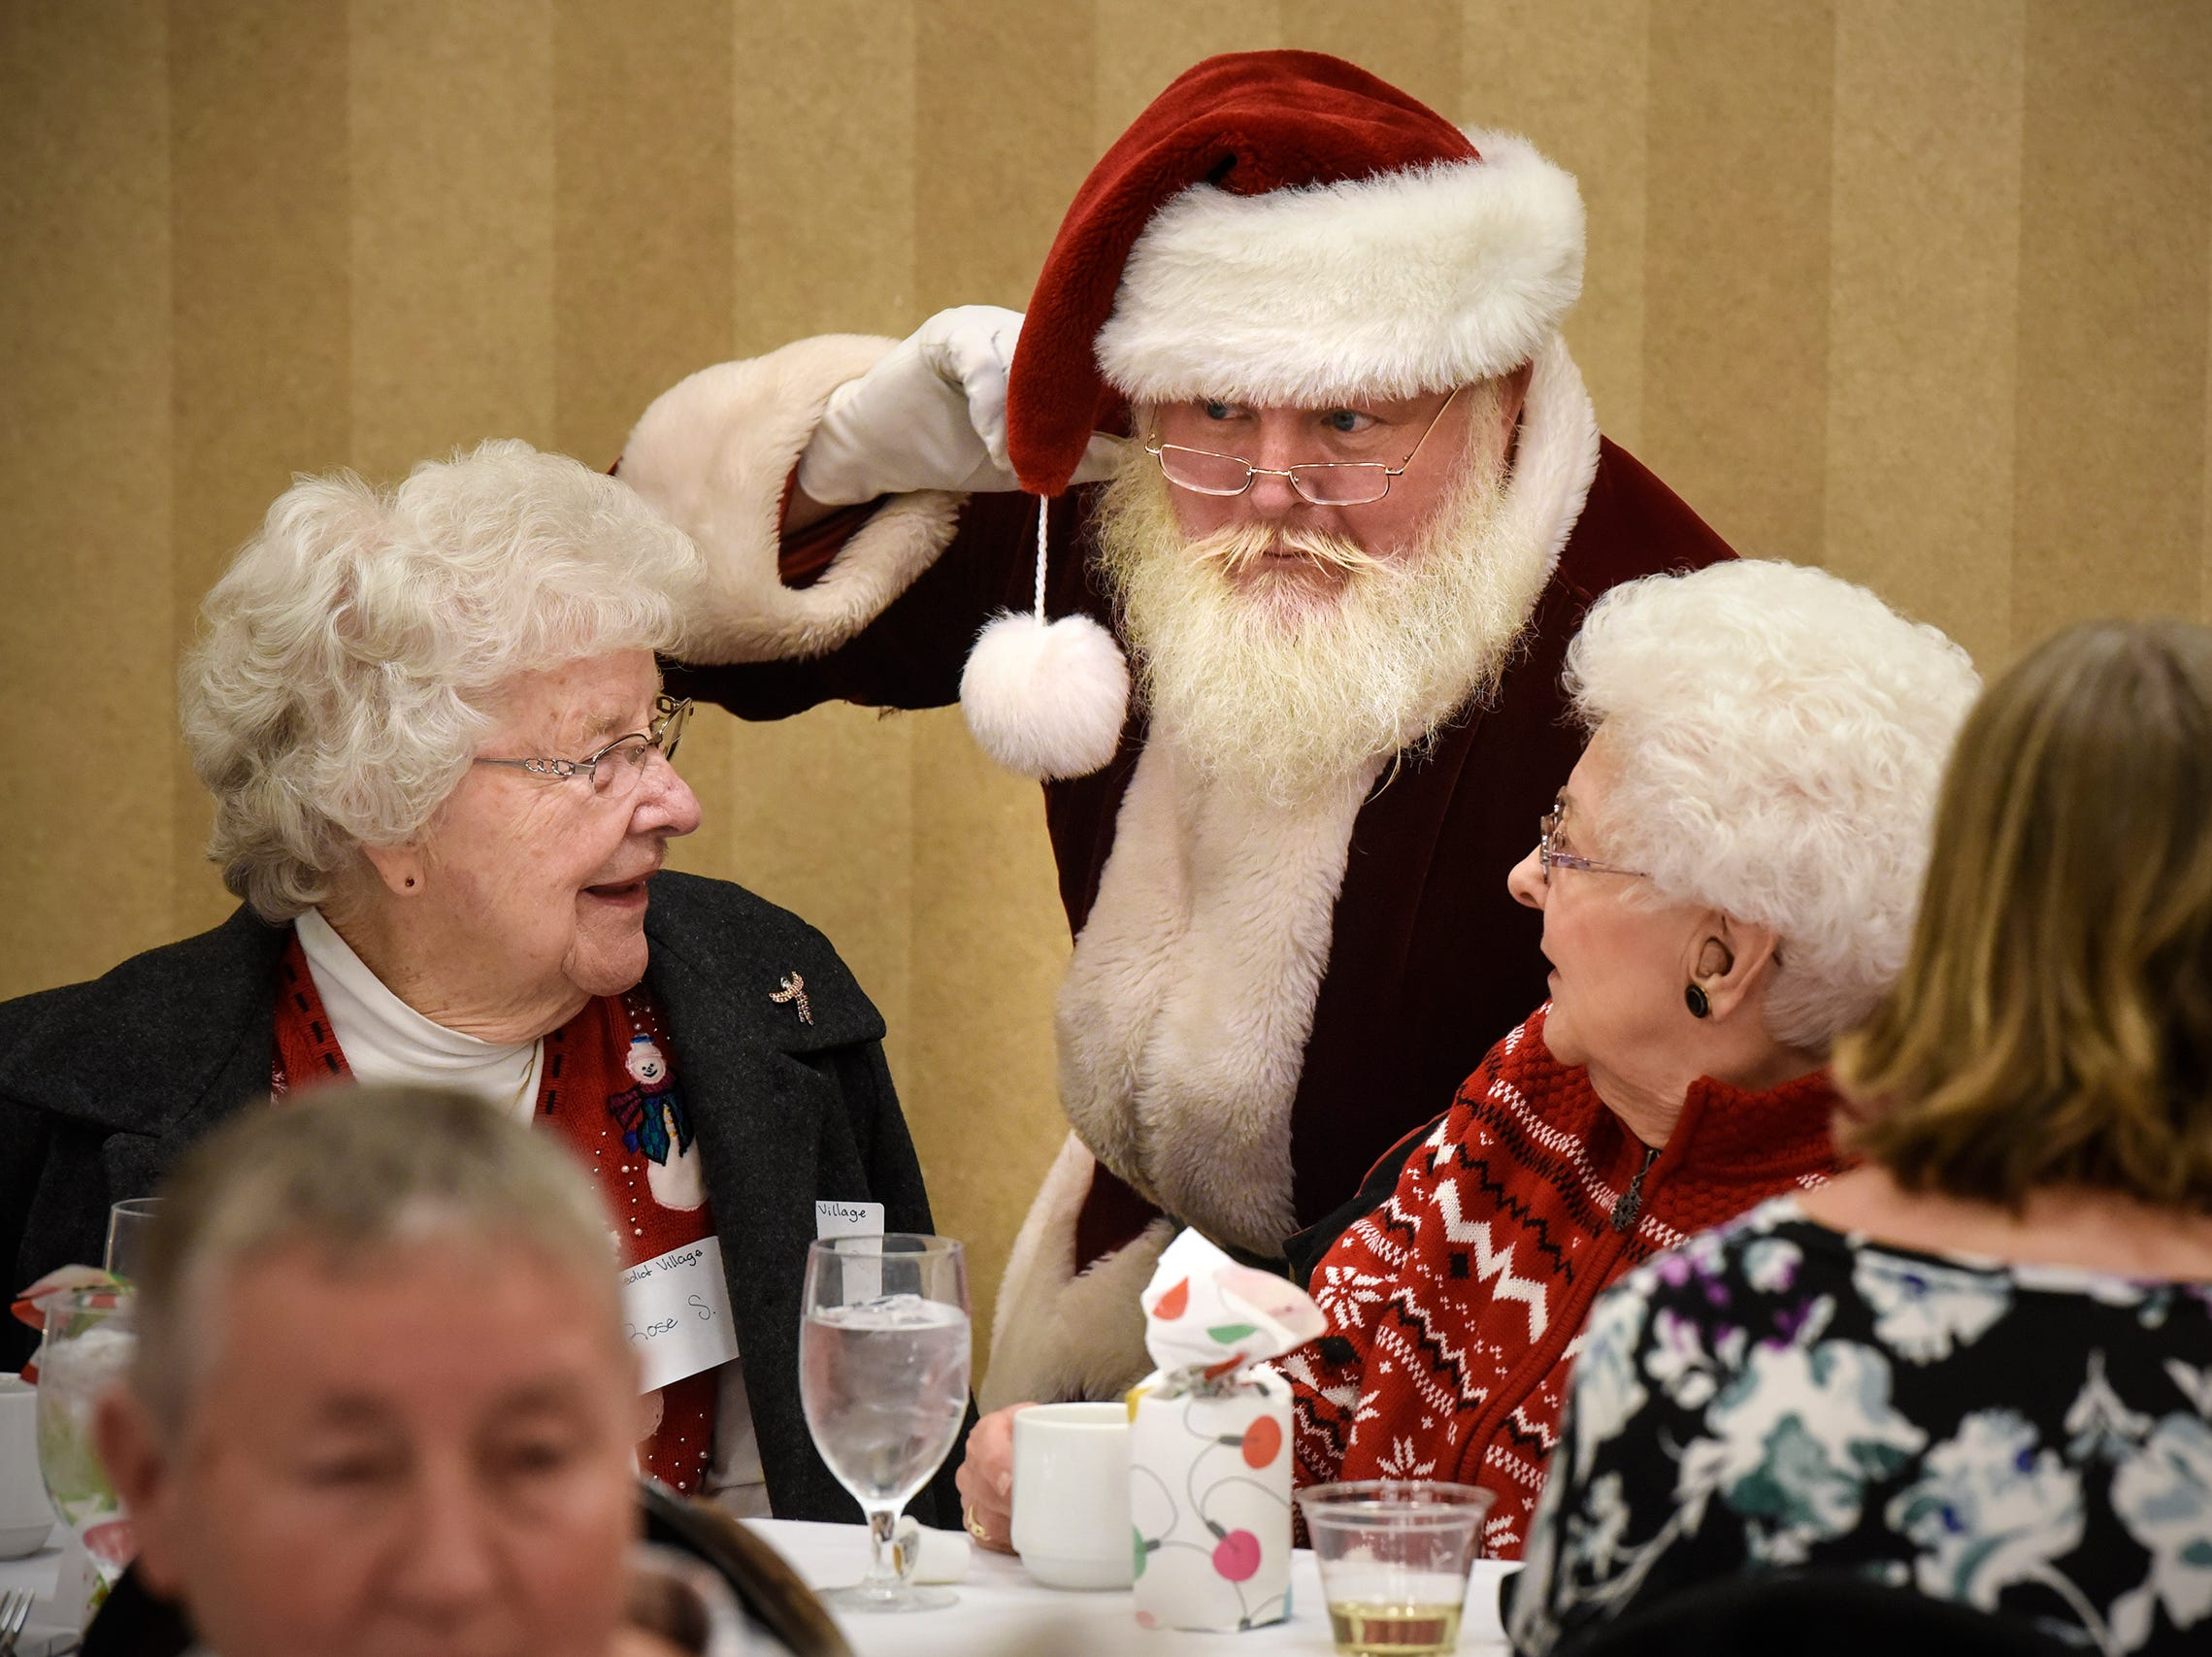 Santa shares some conversation during the Dinner with Santa event Monday, Dec. 17, in St. Cloud.